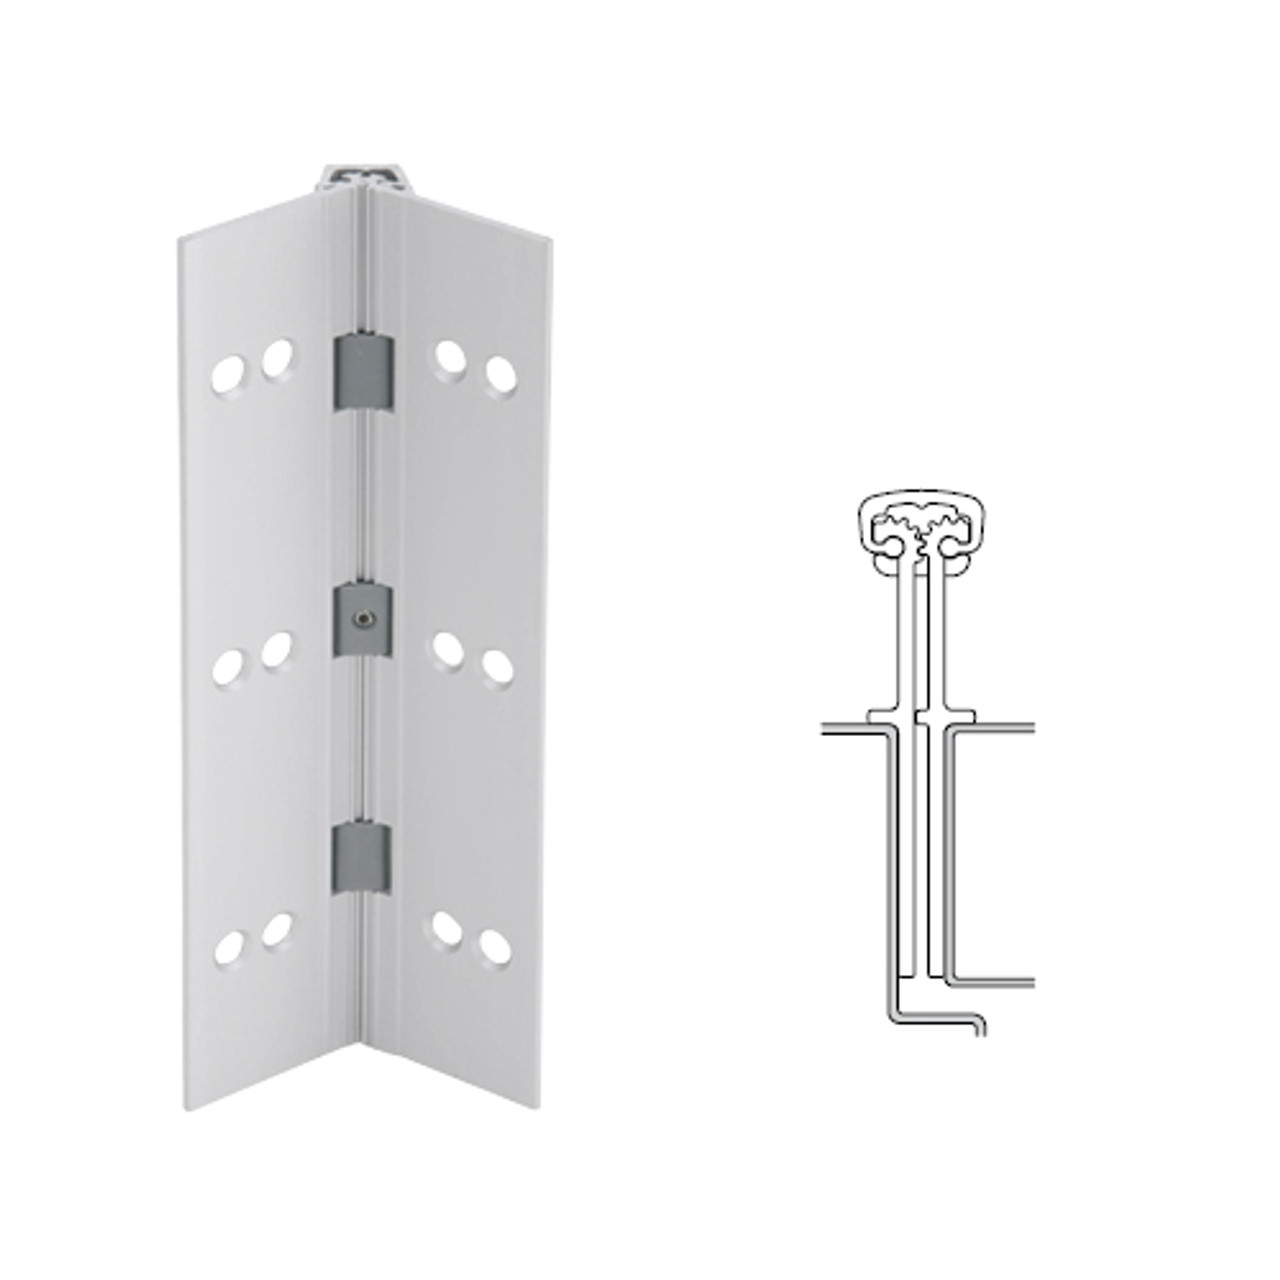 040XY-US28-83-SECHM IVES Full Mortise Continuous Geared Hinges with Security Screws - Hex Pin Drive in Satin Aluminum